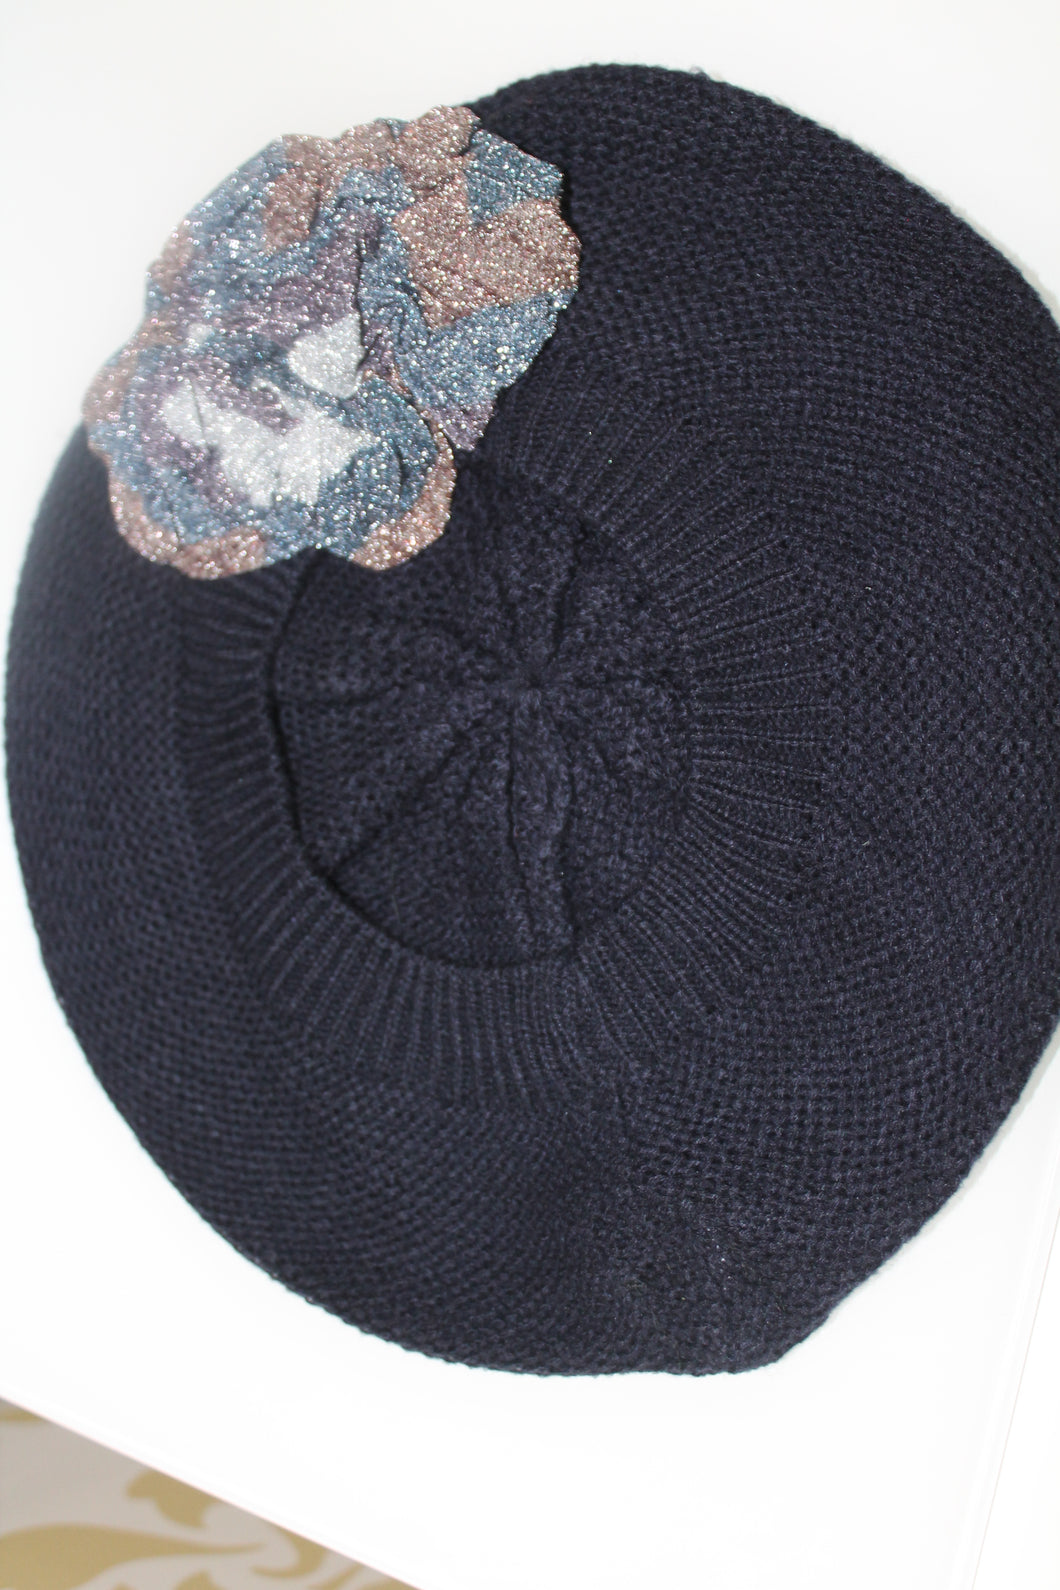 Navy Beret with Brown and Blue Shiny Flower